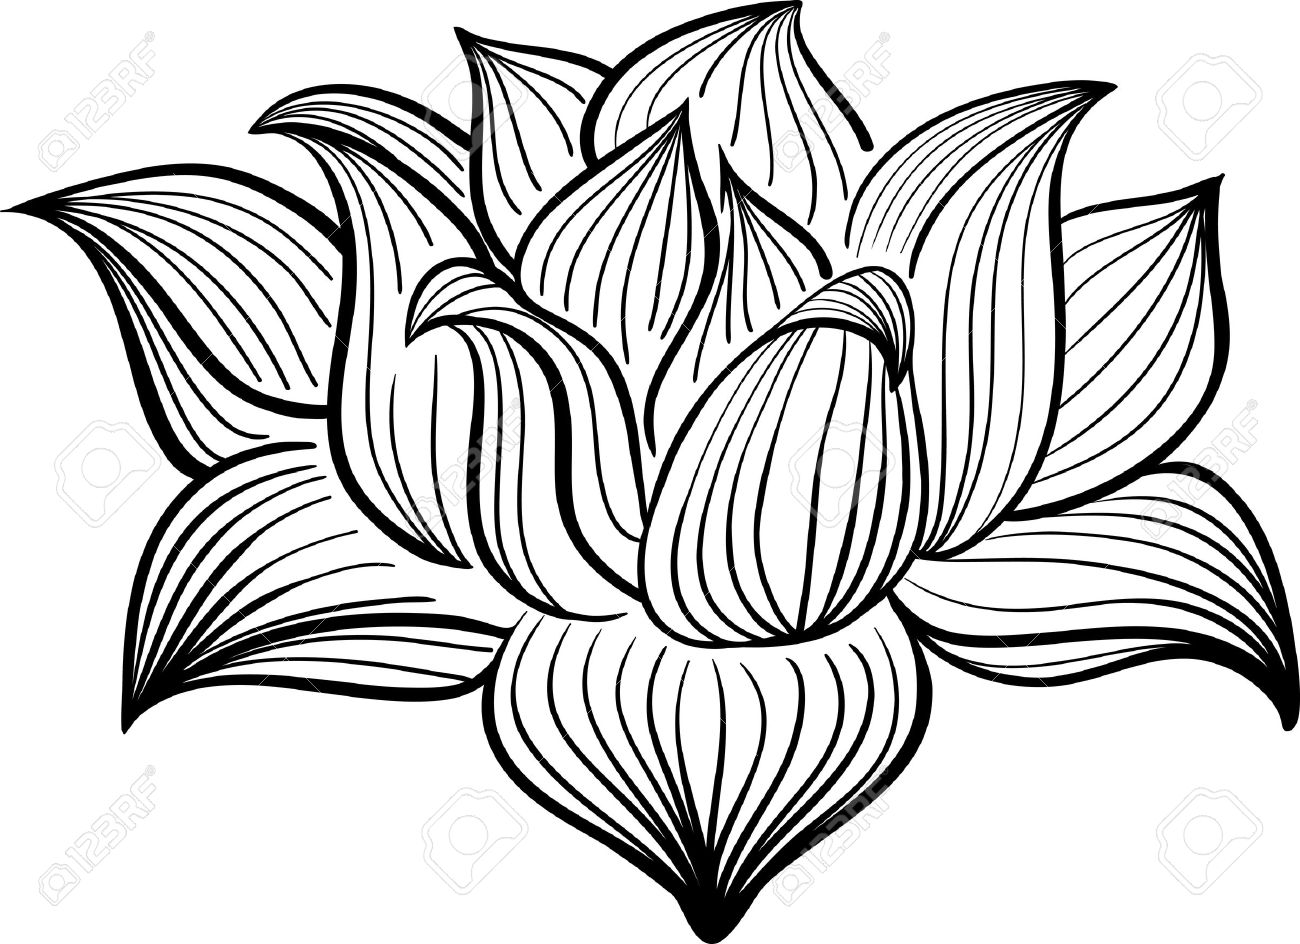 1300x944 Lotus Flower Line Drawing Free Download Clip Art